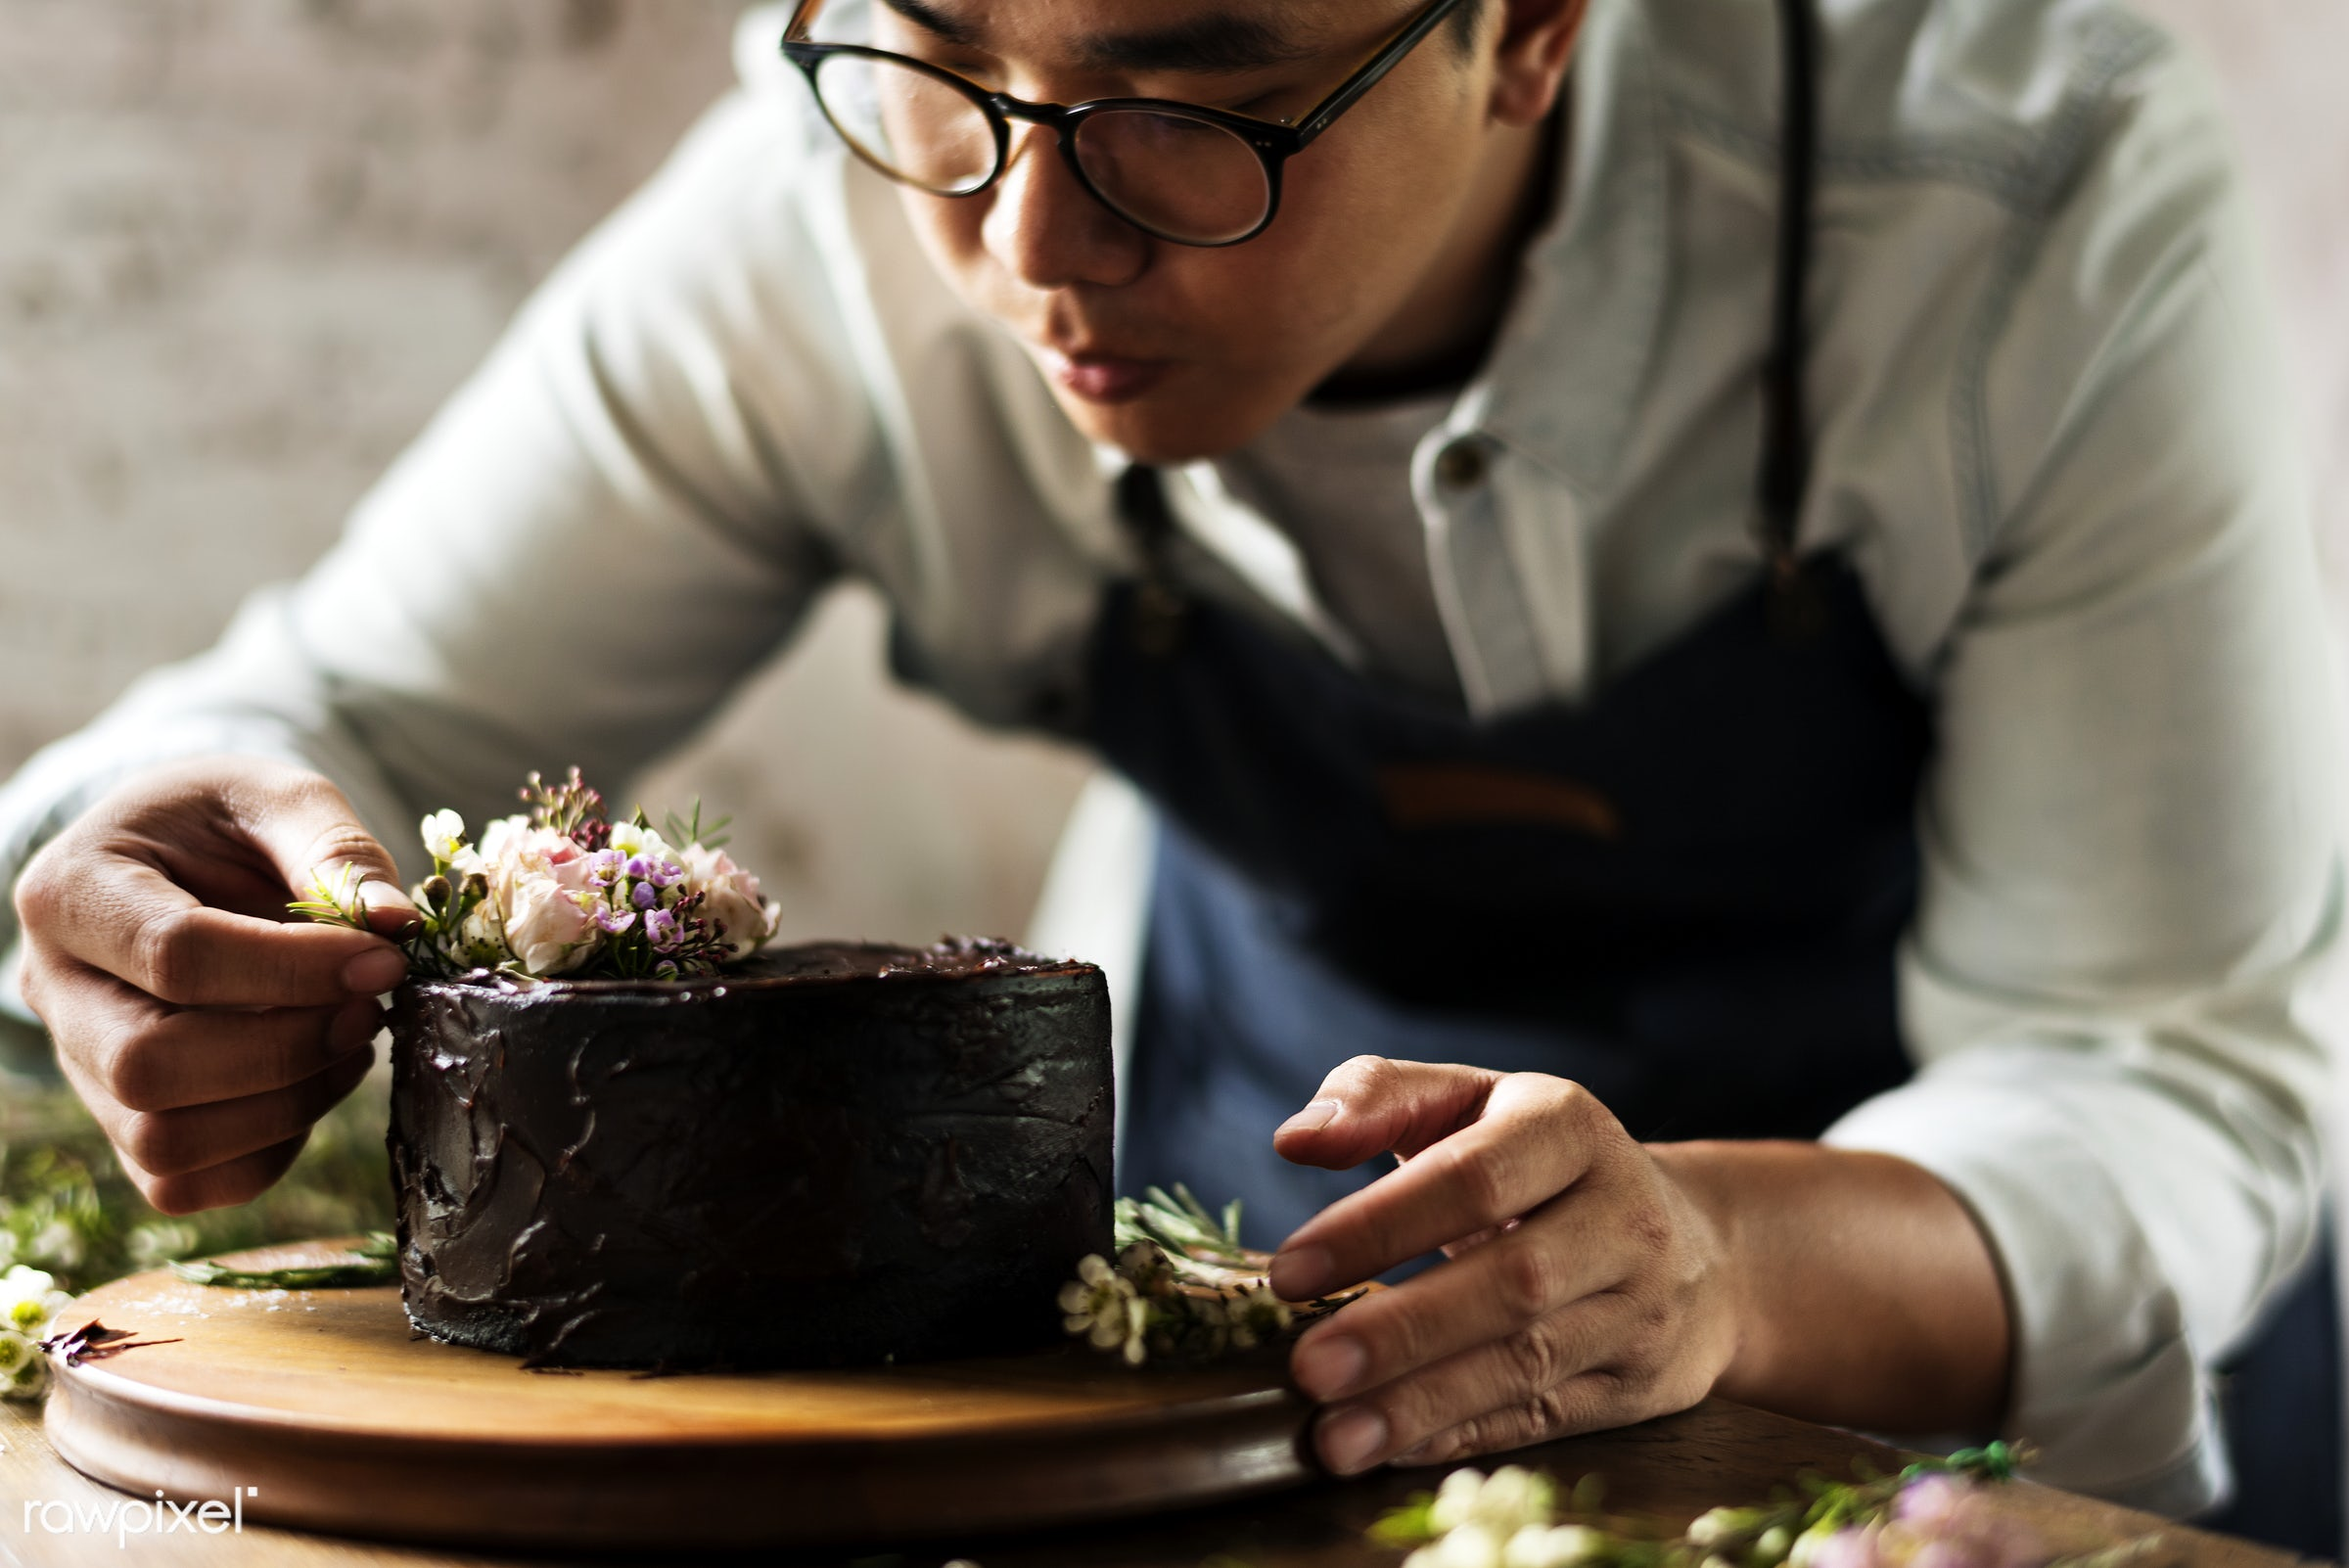 Baker Man Decorating Chocolate Cake with Flowers - art, bakery, cake, chocolate, decoration, dessert, floral, flowers, food...